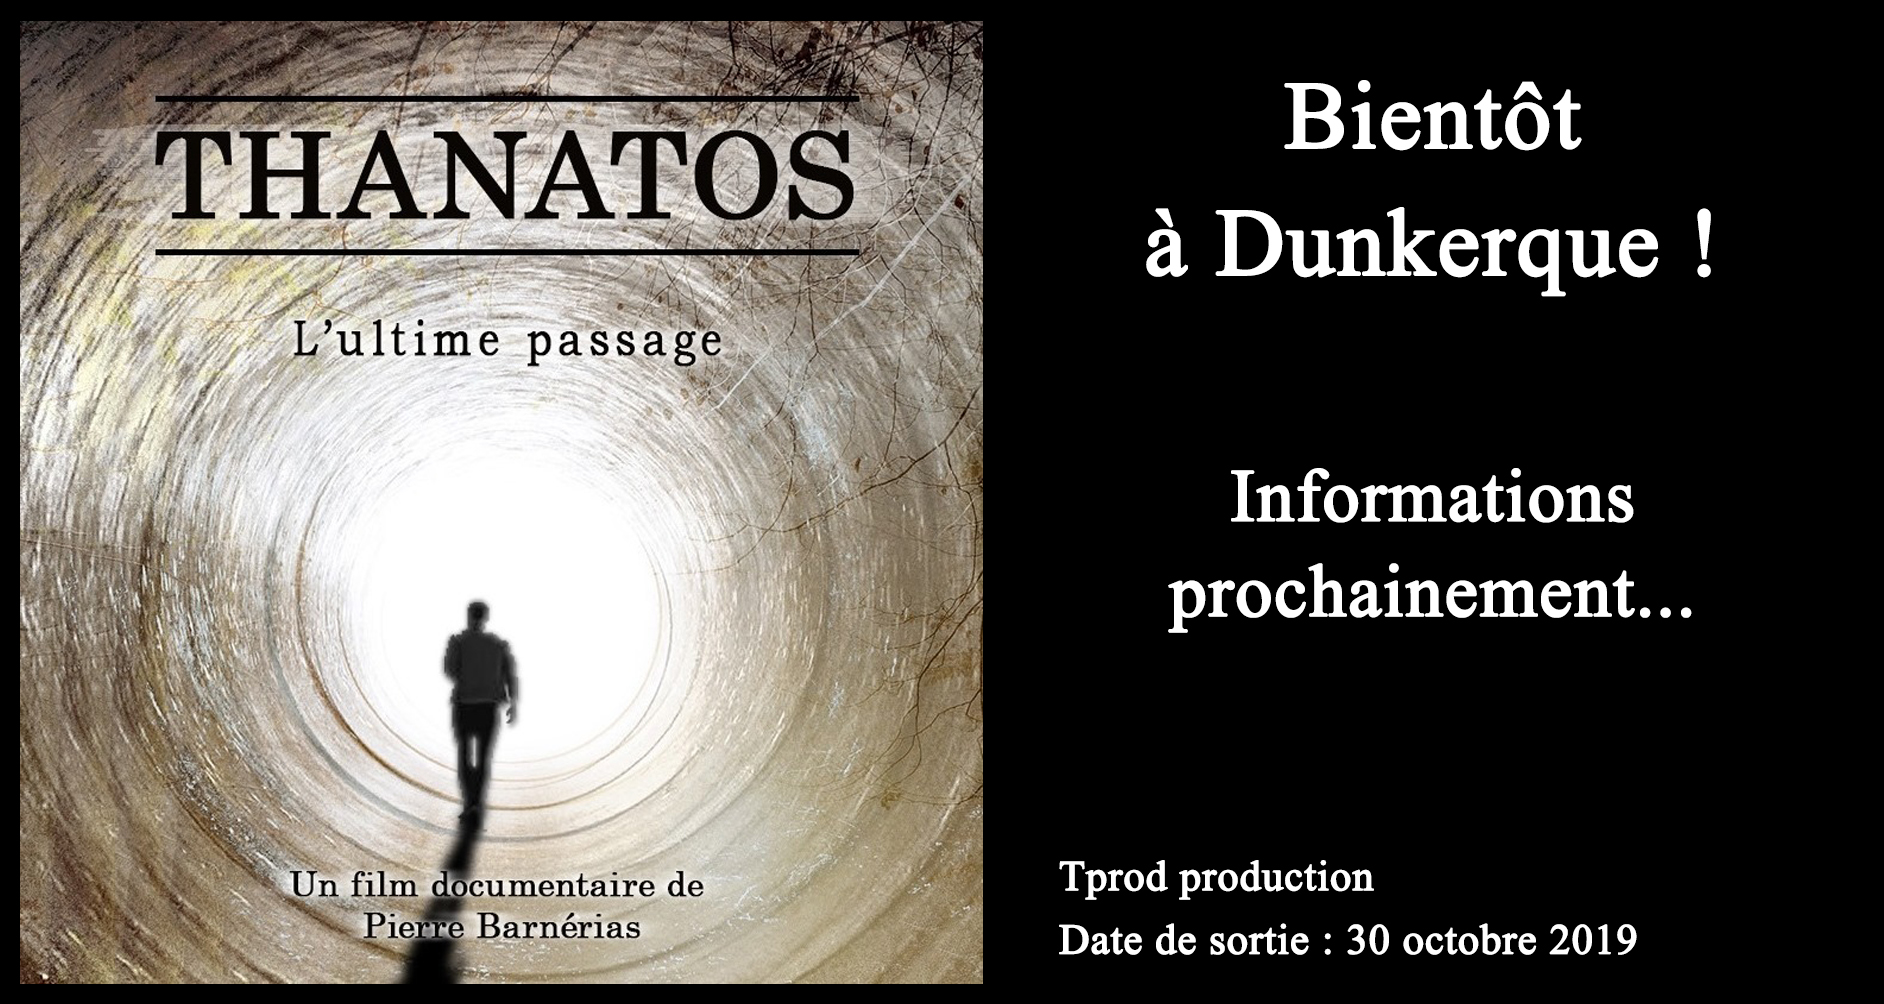 2020 Thanatos - L'ultime passage - Dunkerque - Studio 43